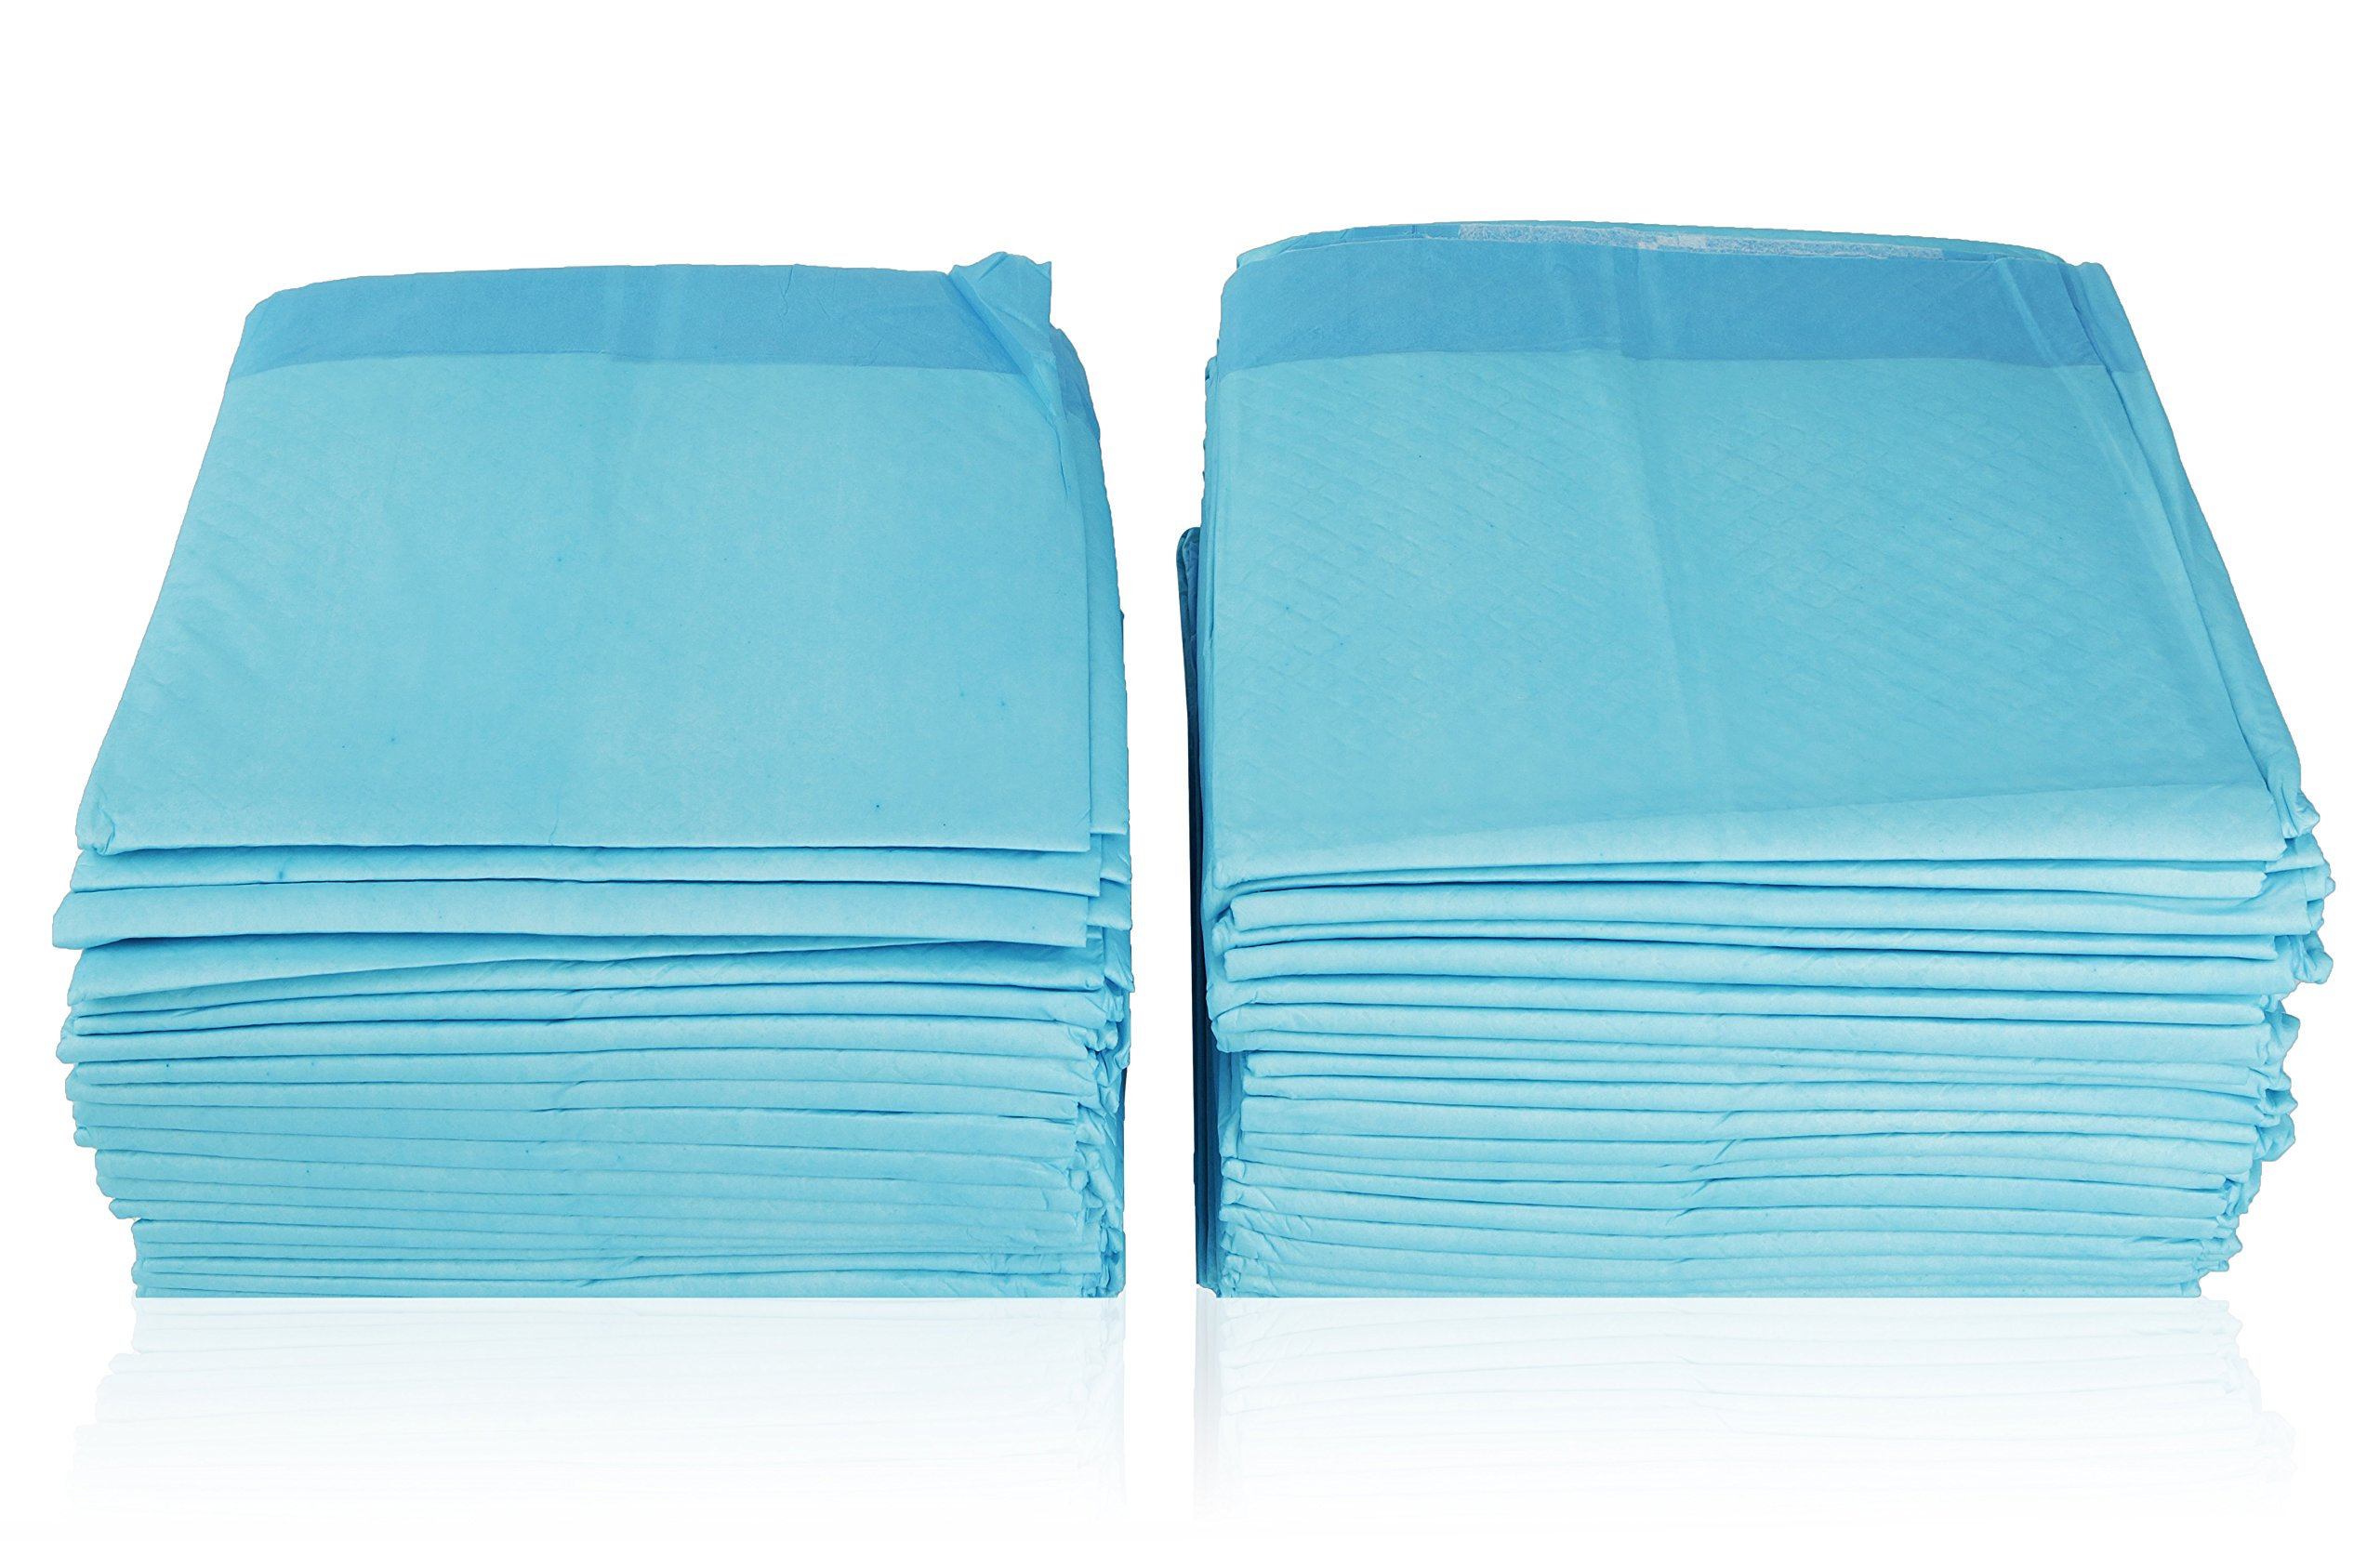 REMEDIES Disposable Underpad 150 Count Soft Fluff Fill (3 Packs of 50), 23'' X 36'', 45g by REMEDIES (Image #3)